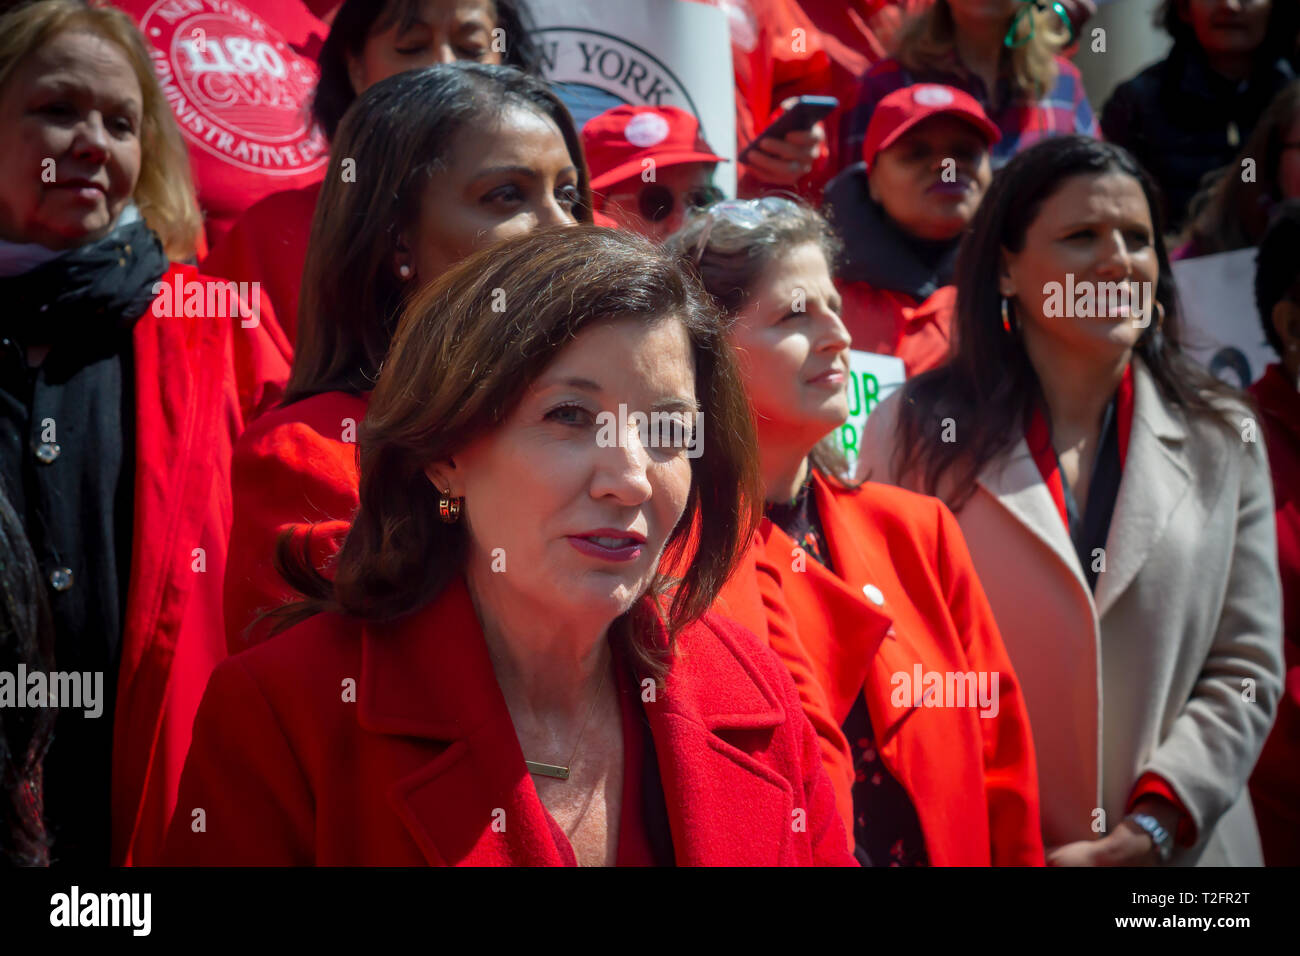 New York, USA. 02nd Apr, 2019. NYS Lt. Governor Kathy Hochul joins activists, community leaders, union members and other politicians on the steps of City Hall in New York on Tuesday, April 2, 2019 to rally against pay disparity on the 13th annual Equal Pay Day. Worldwide women on average earn 87 cents for every dollar her male counterpart earns with dramatic adjustments for women of color. Credit: Richard Levine/Alamy Live News - Stock Image